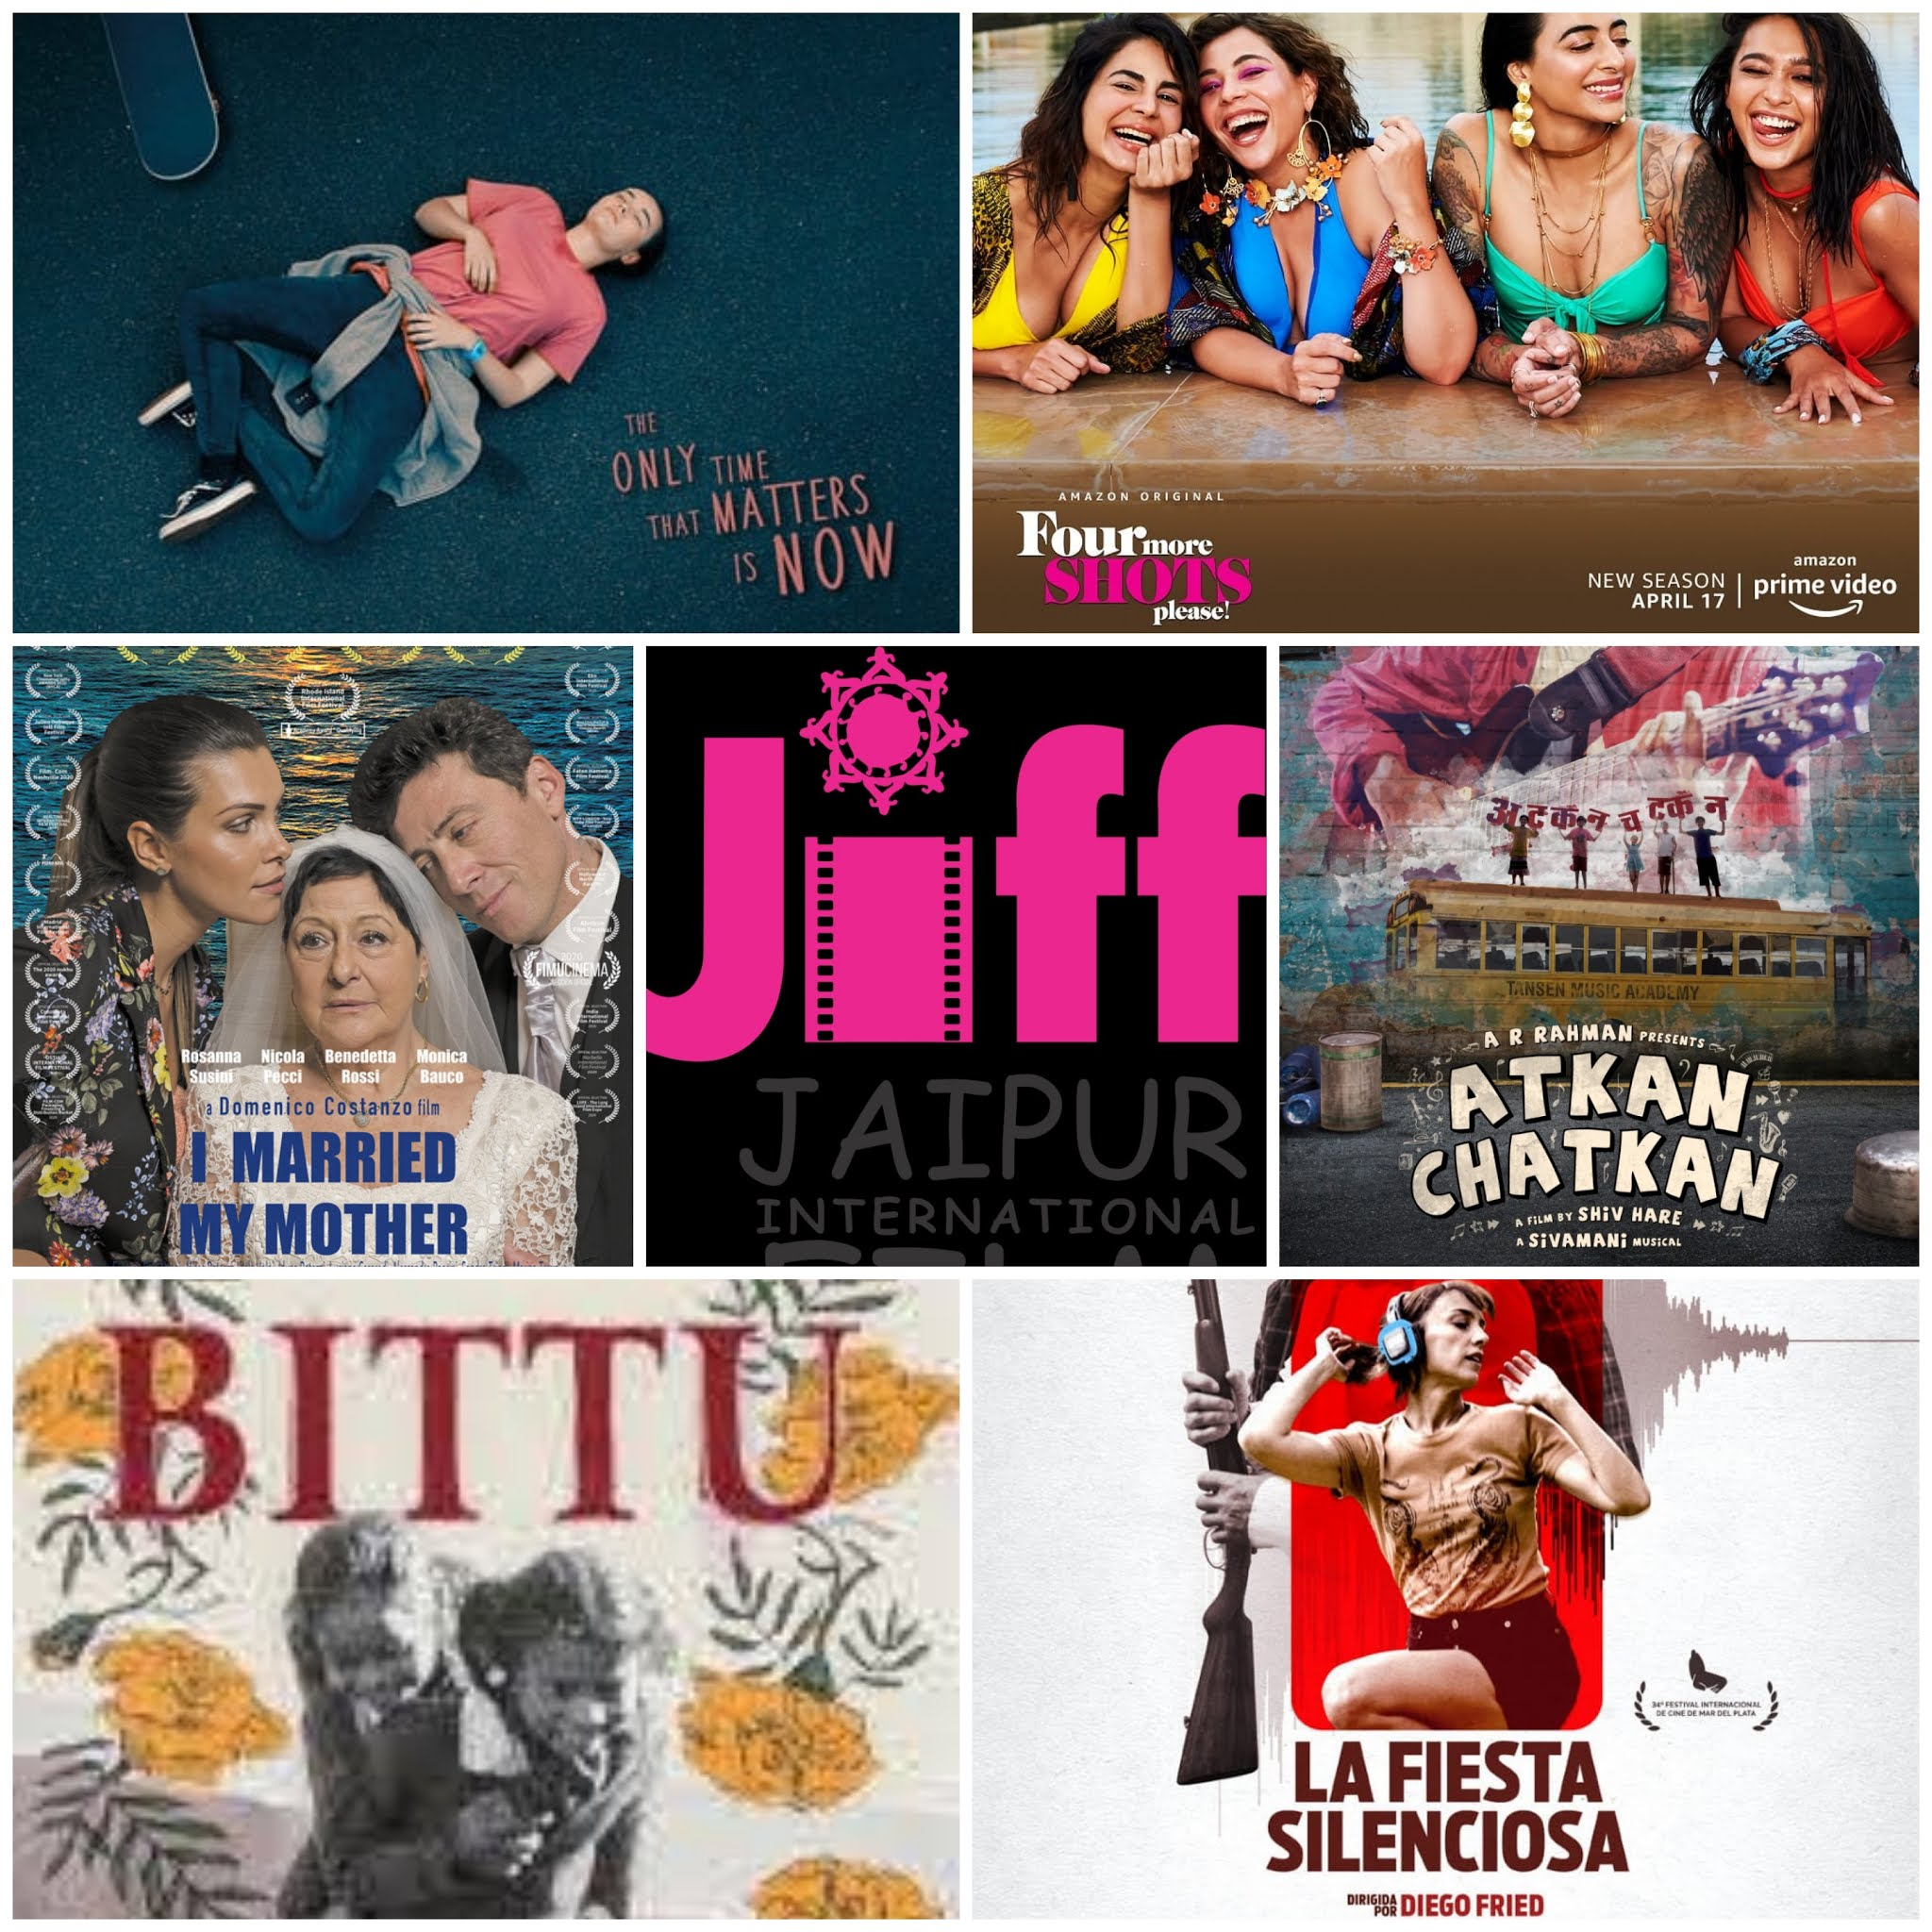 JIFF-2021-will-be-conducted-online-from-January-15-and-266-films-from-44-countries-will-be-shown-online